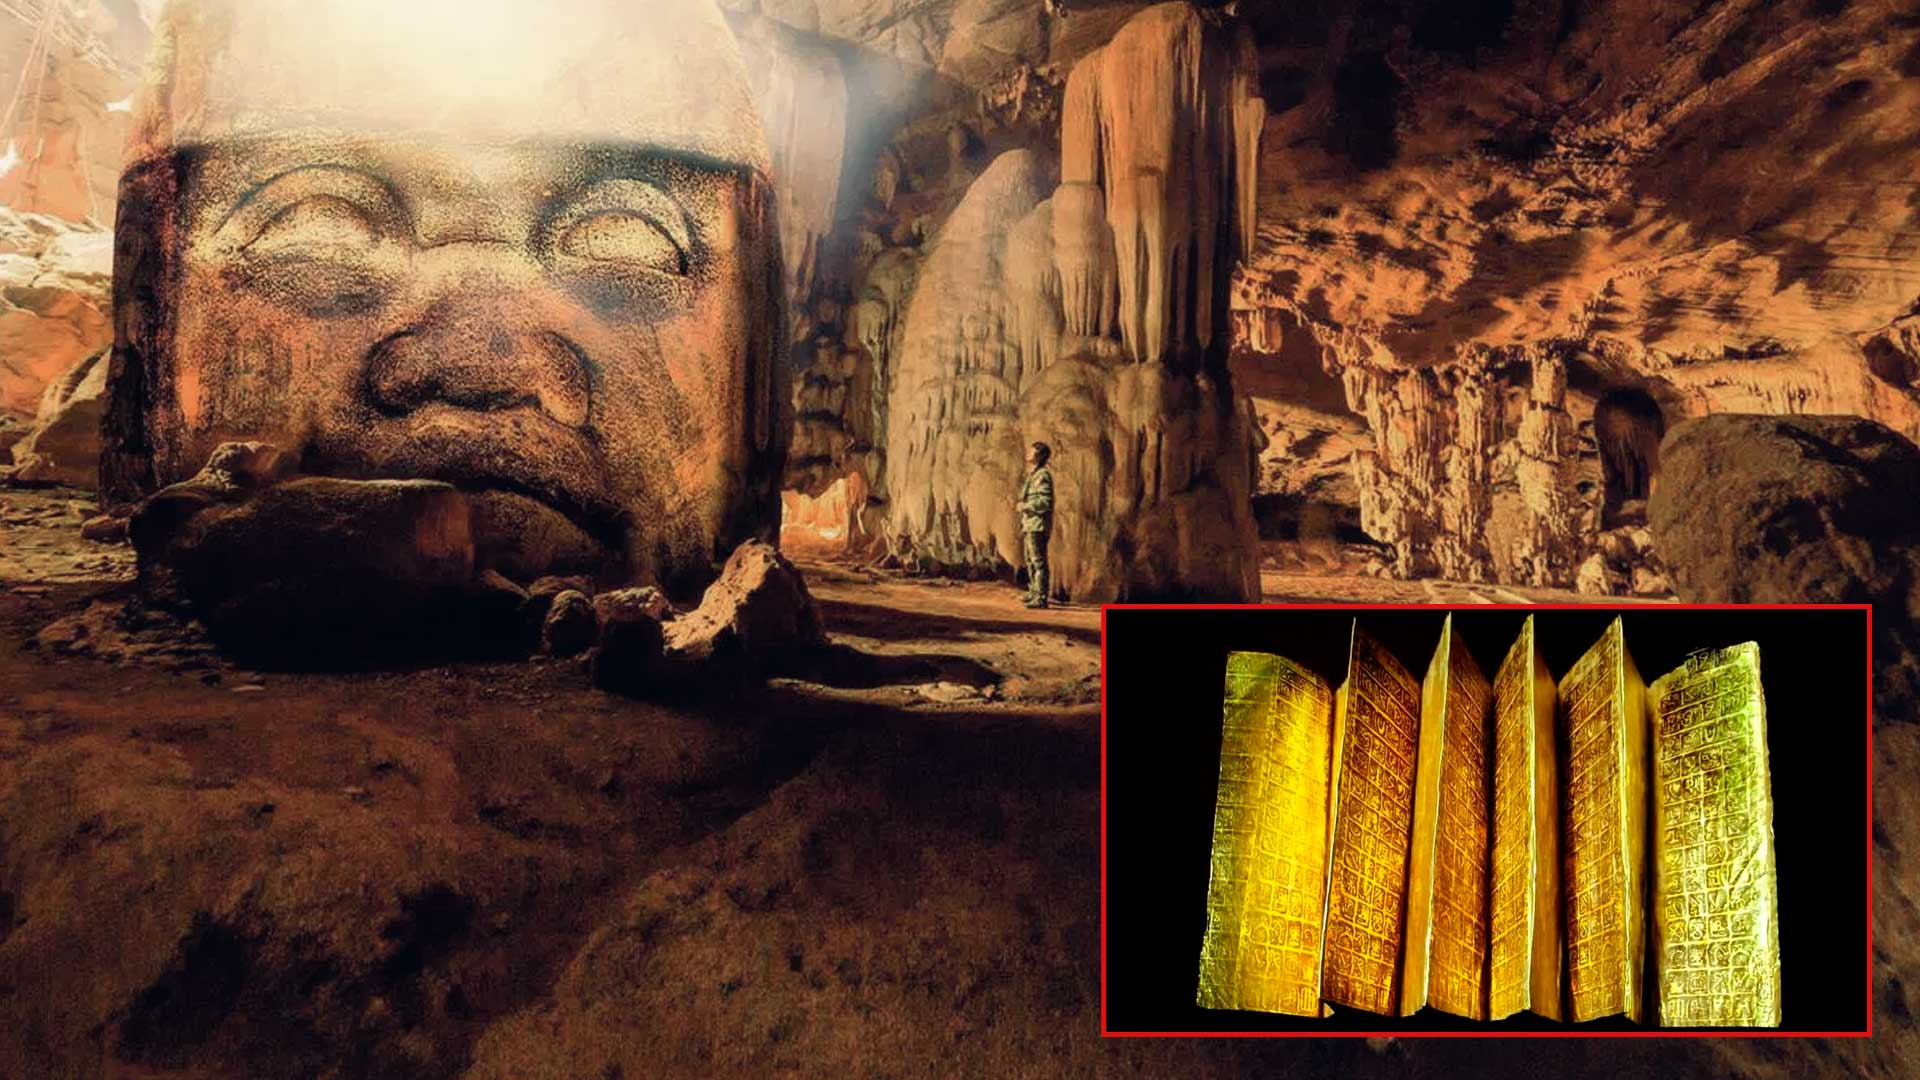 The truth about the South American Tunnel: a 4,000 km long artificial cave containing artifacts alluding to a high-tech empire that once existed (P1) - Photo 1.